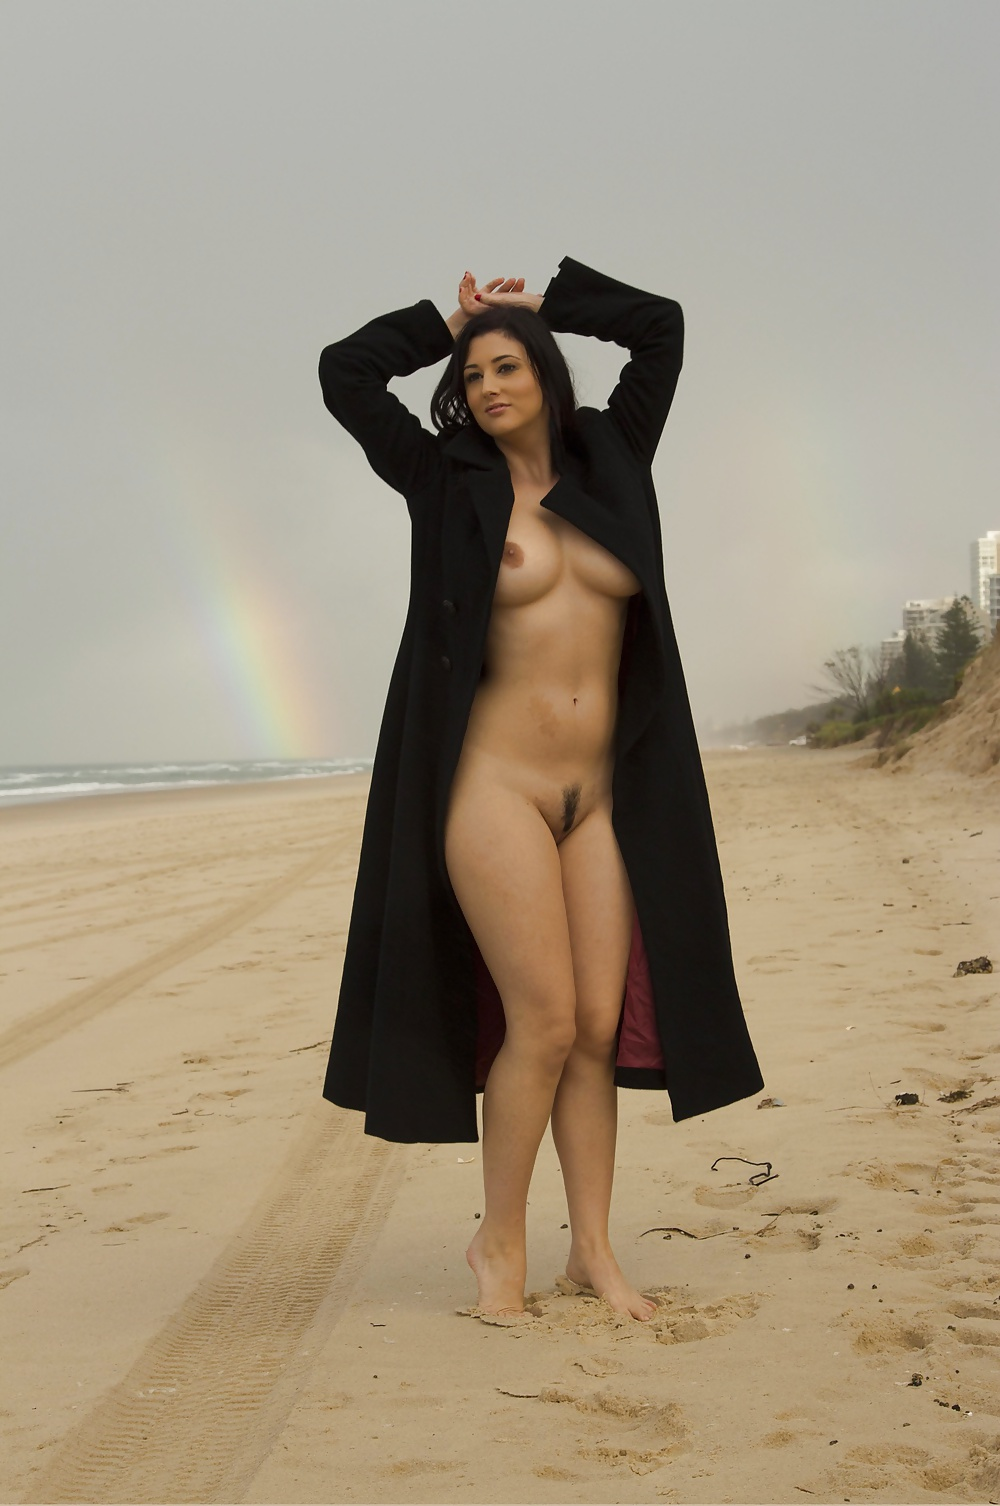 shemale-videos-naked-arab-women-picture-gallery-gosh